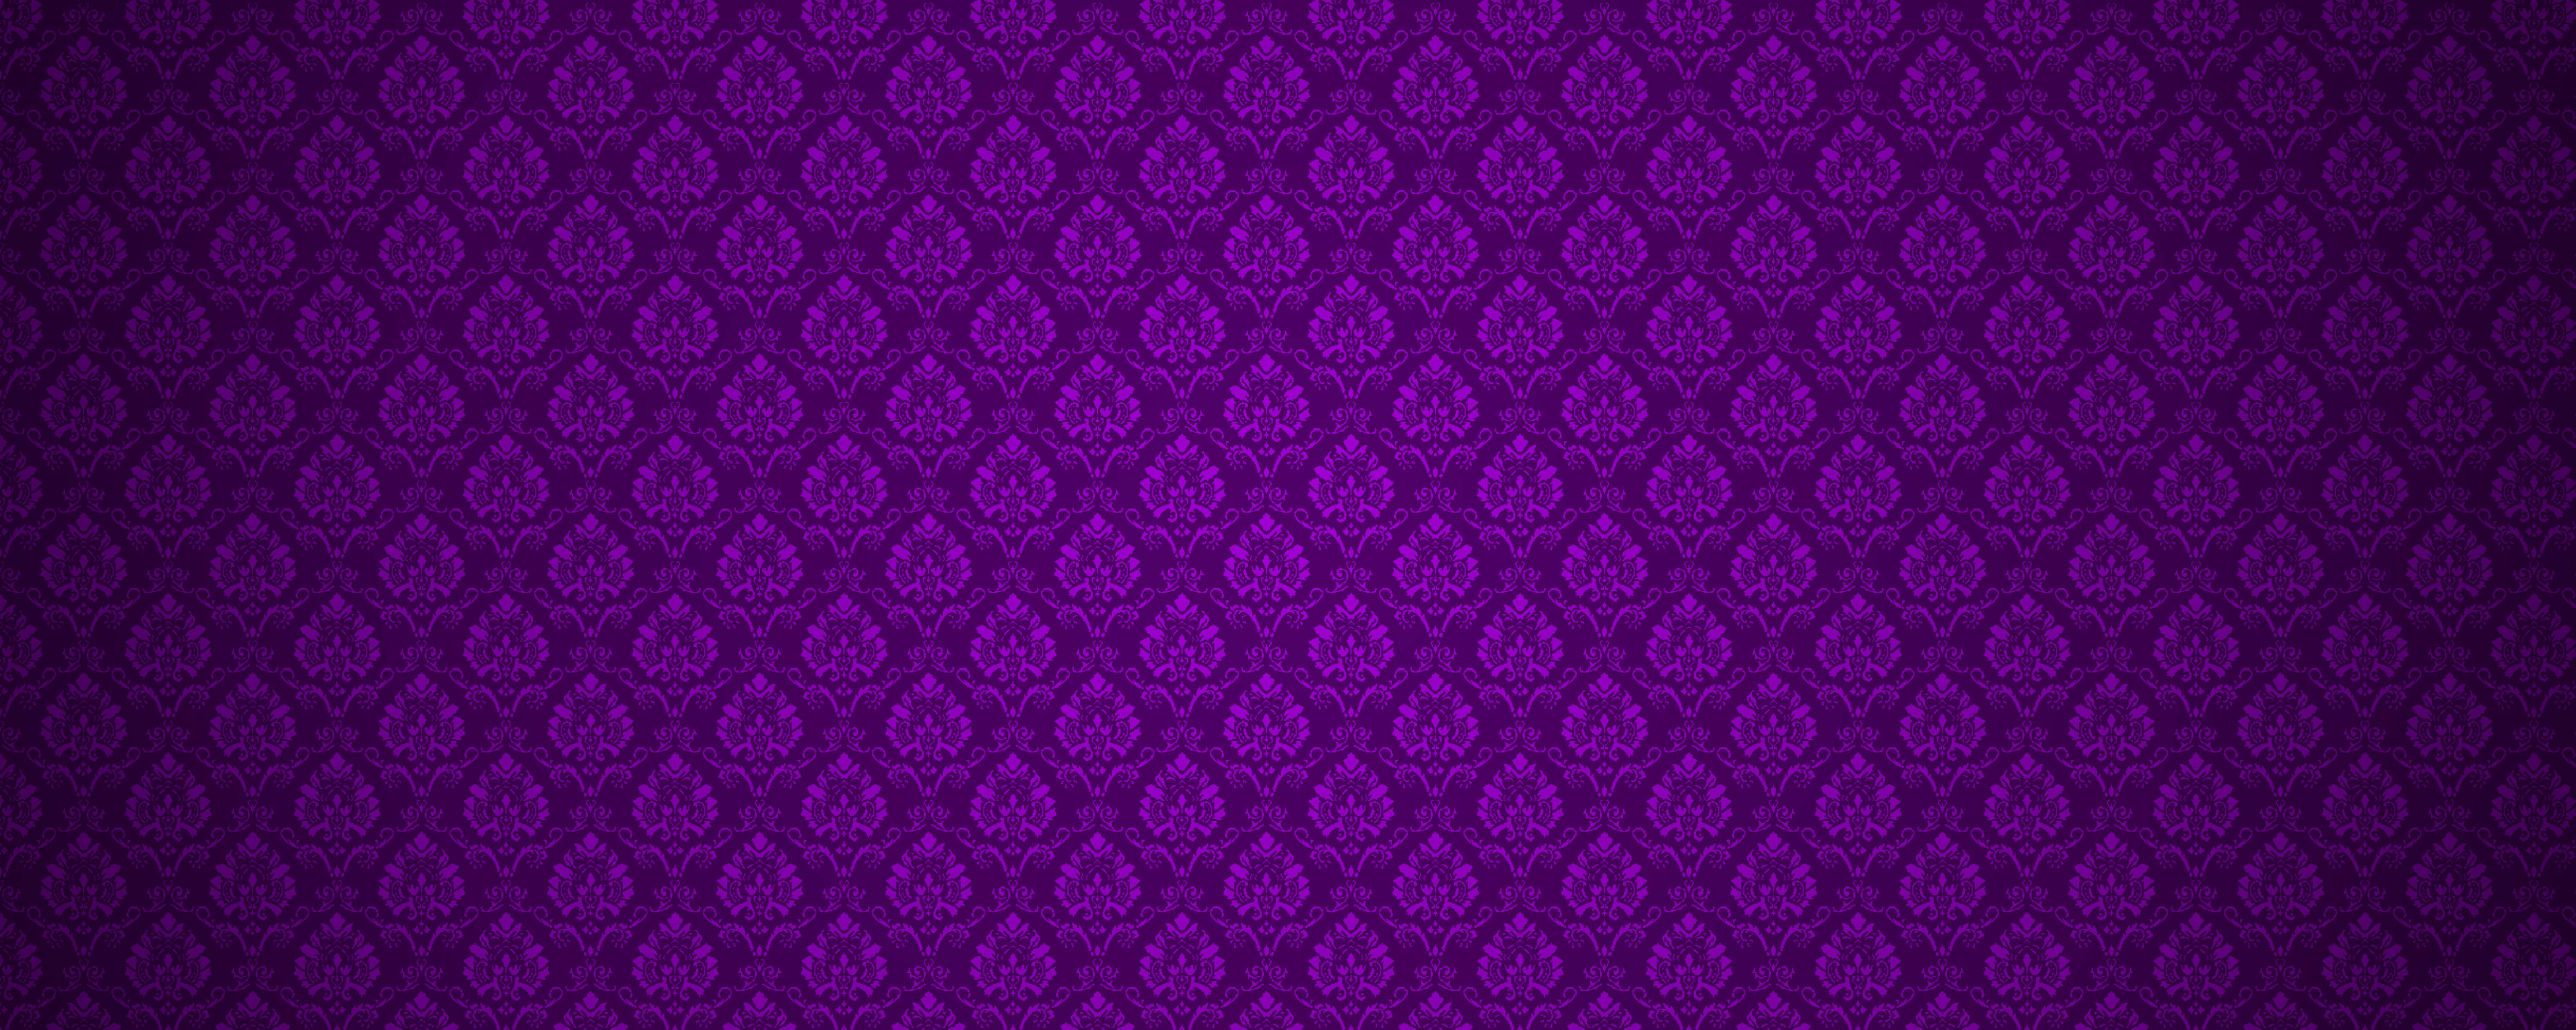 39 High Definition Purple Wallpaper Images for Download 5000x2000